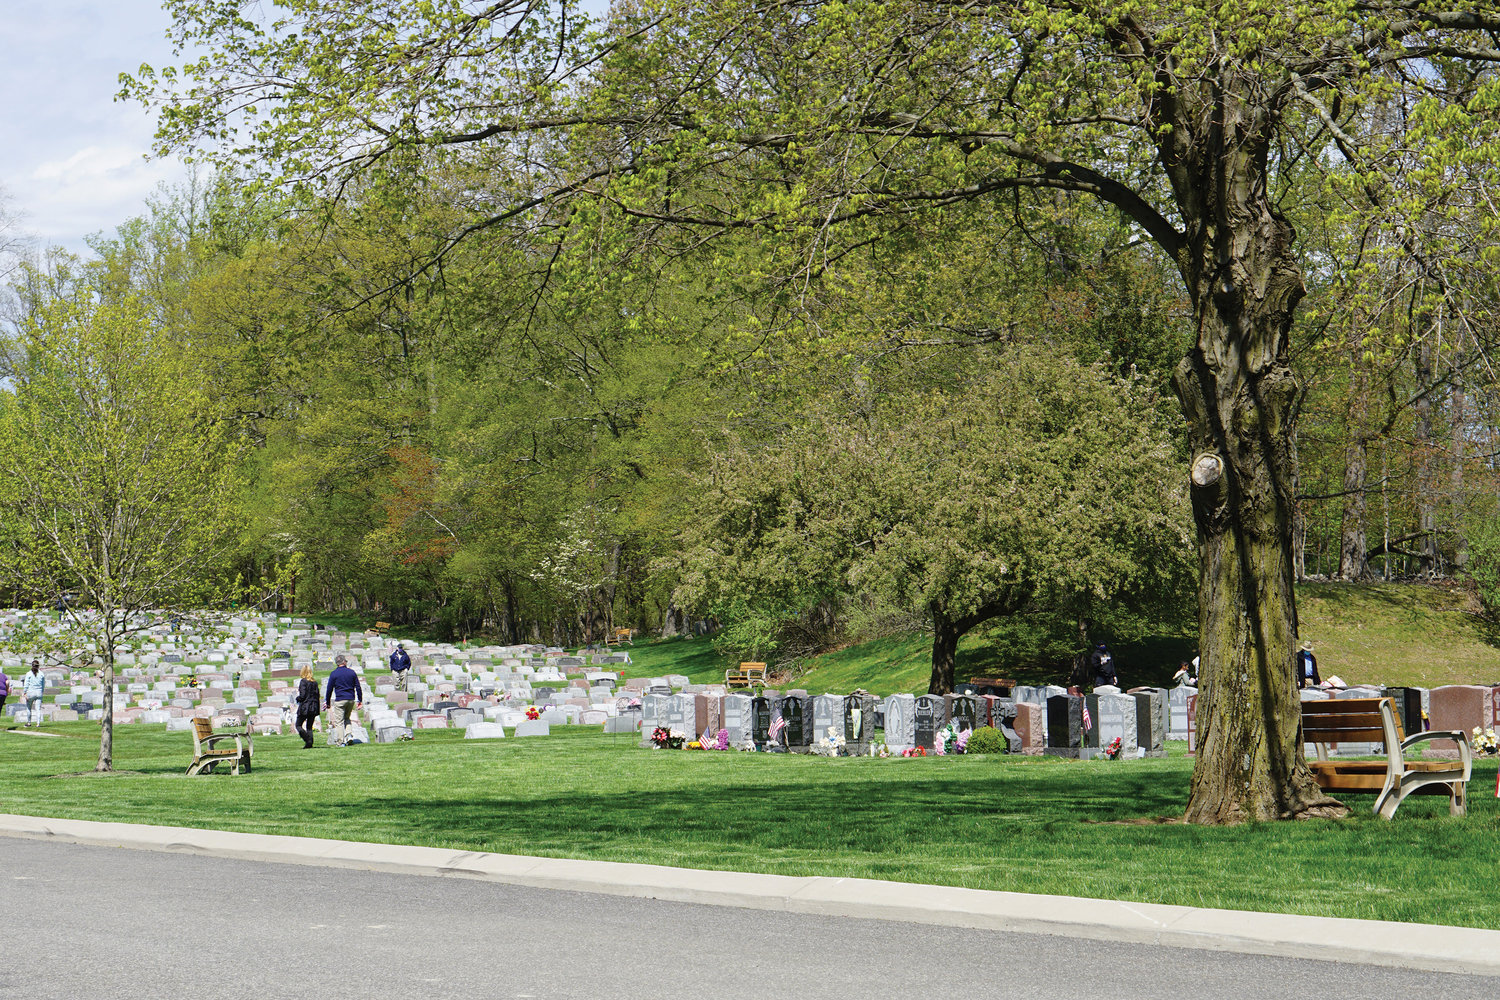 With a tree's branches displaying springtime growth, visitors are spread throughout at Ascension Cemetery in Airmont.